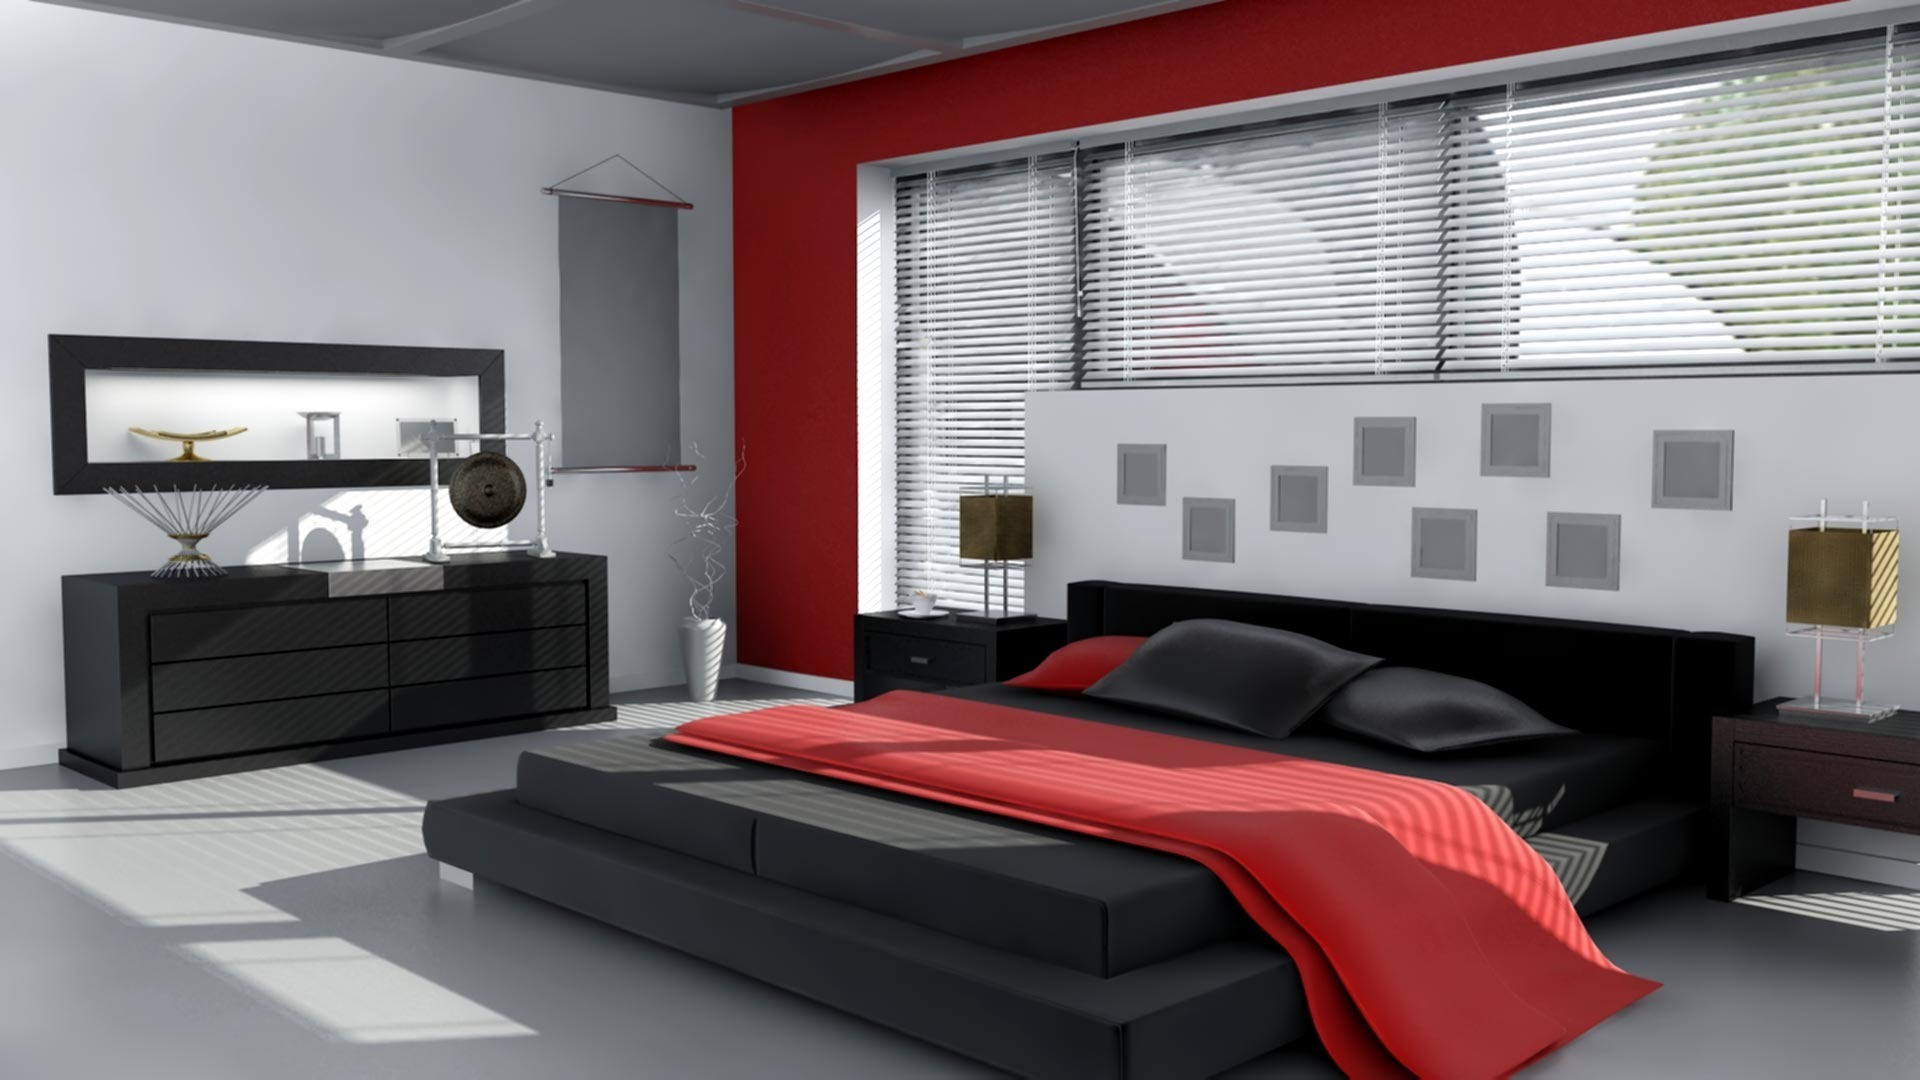 Red white and black bedroom wallpaper 666 1920x1080